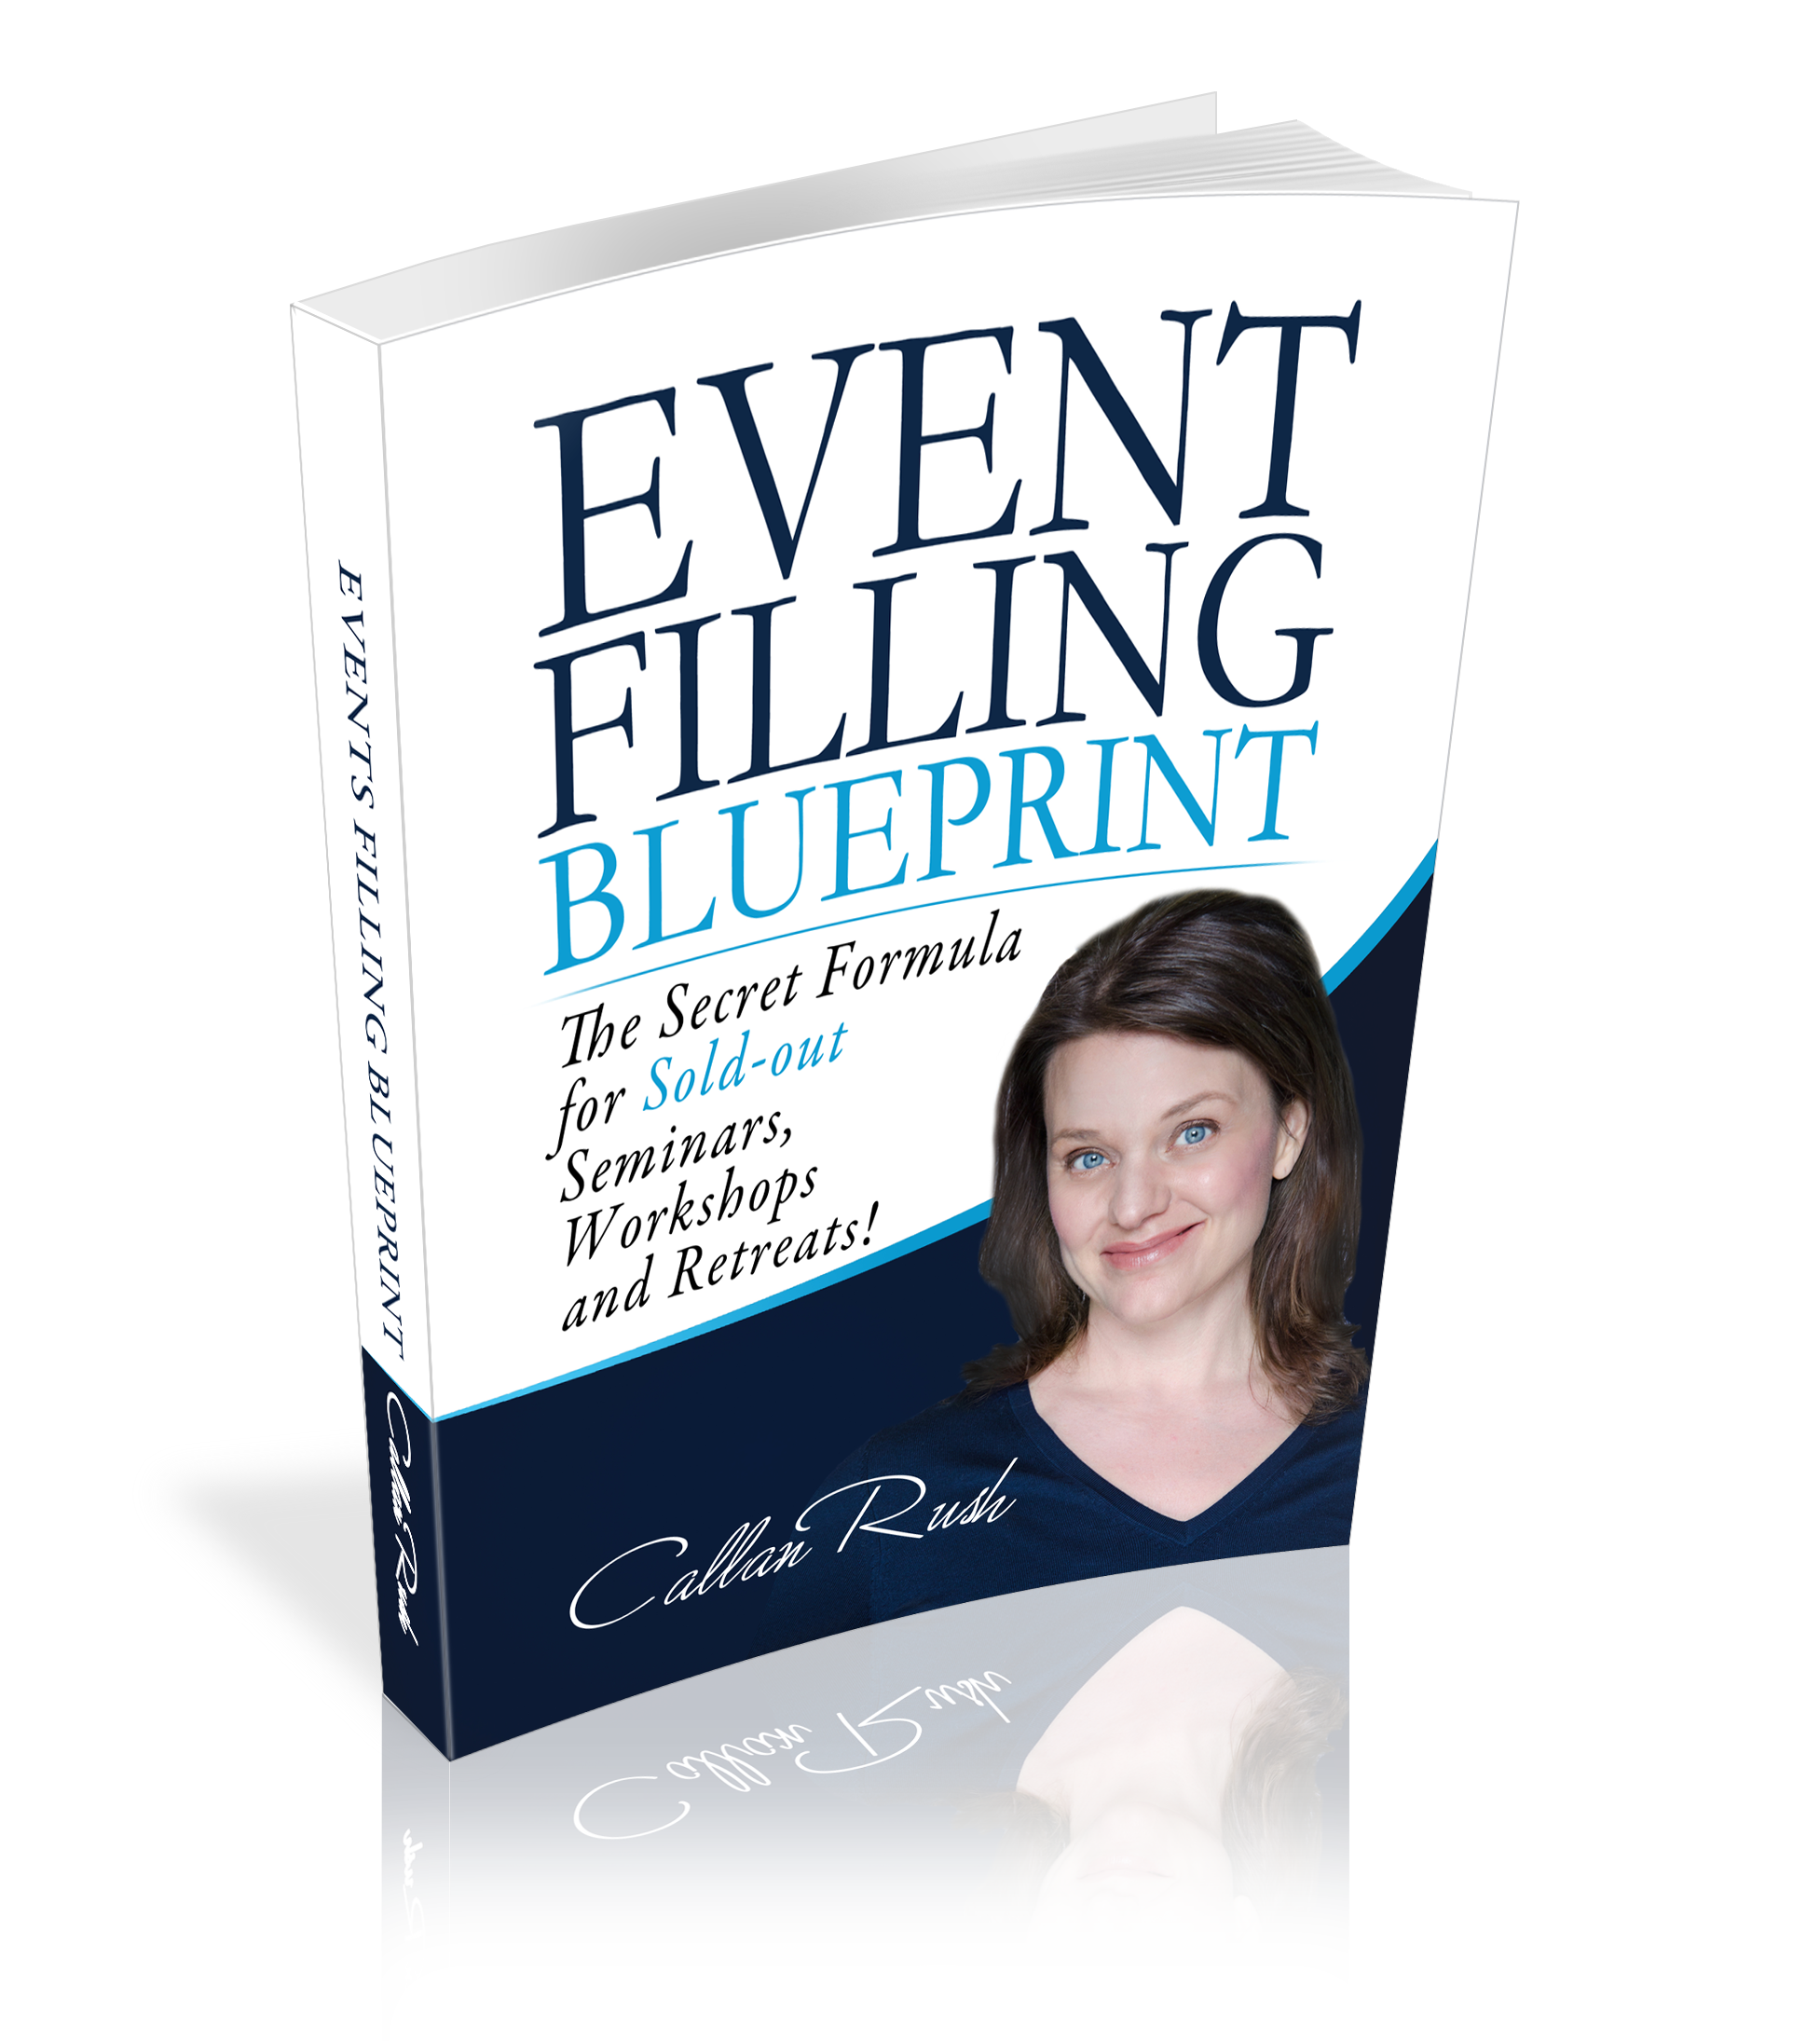 Part 3 event filling blueprint callan rush download free book part 3 event filling blueprint callan rush download free book watch streaming video malvernweather Image collections